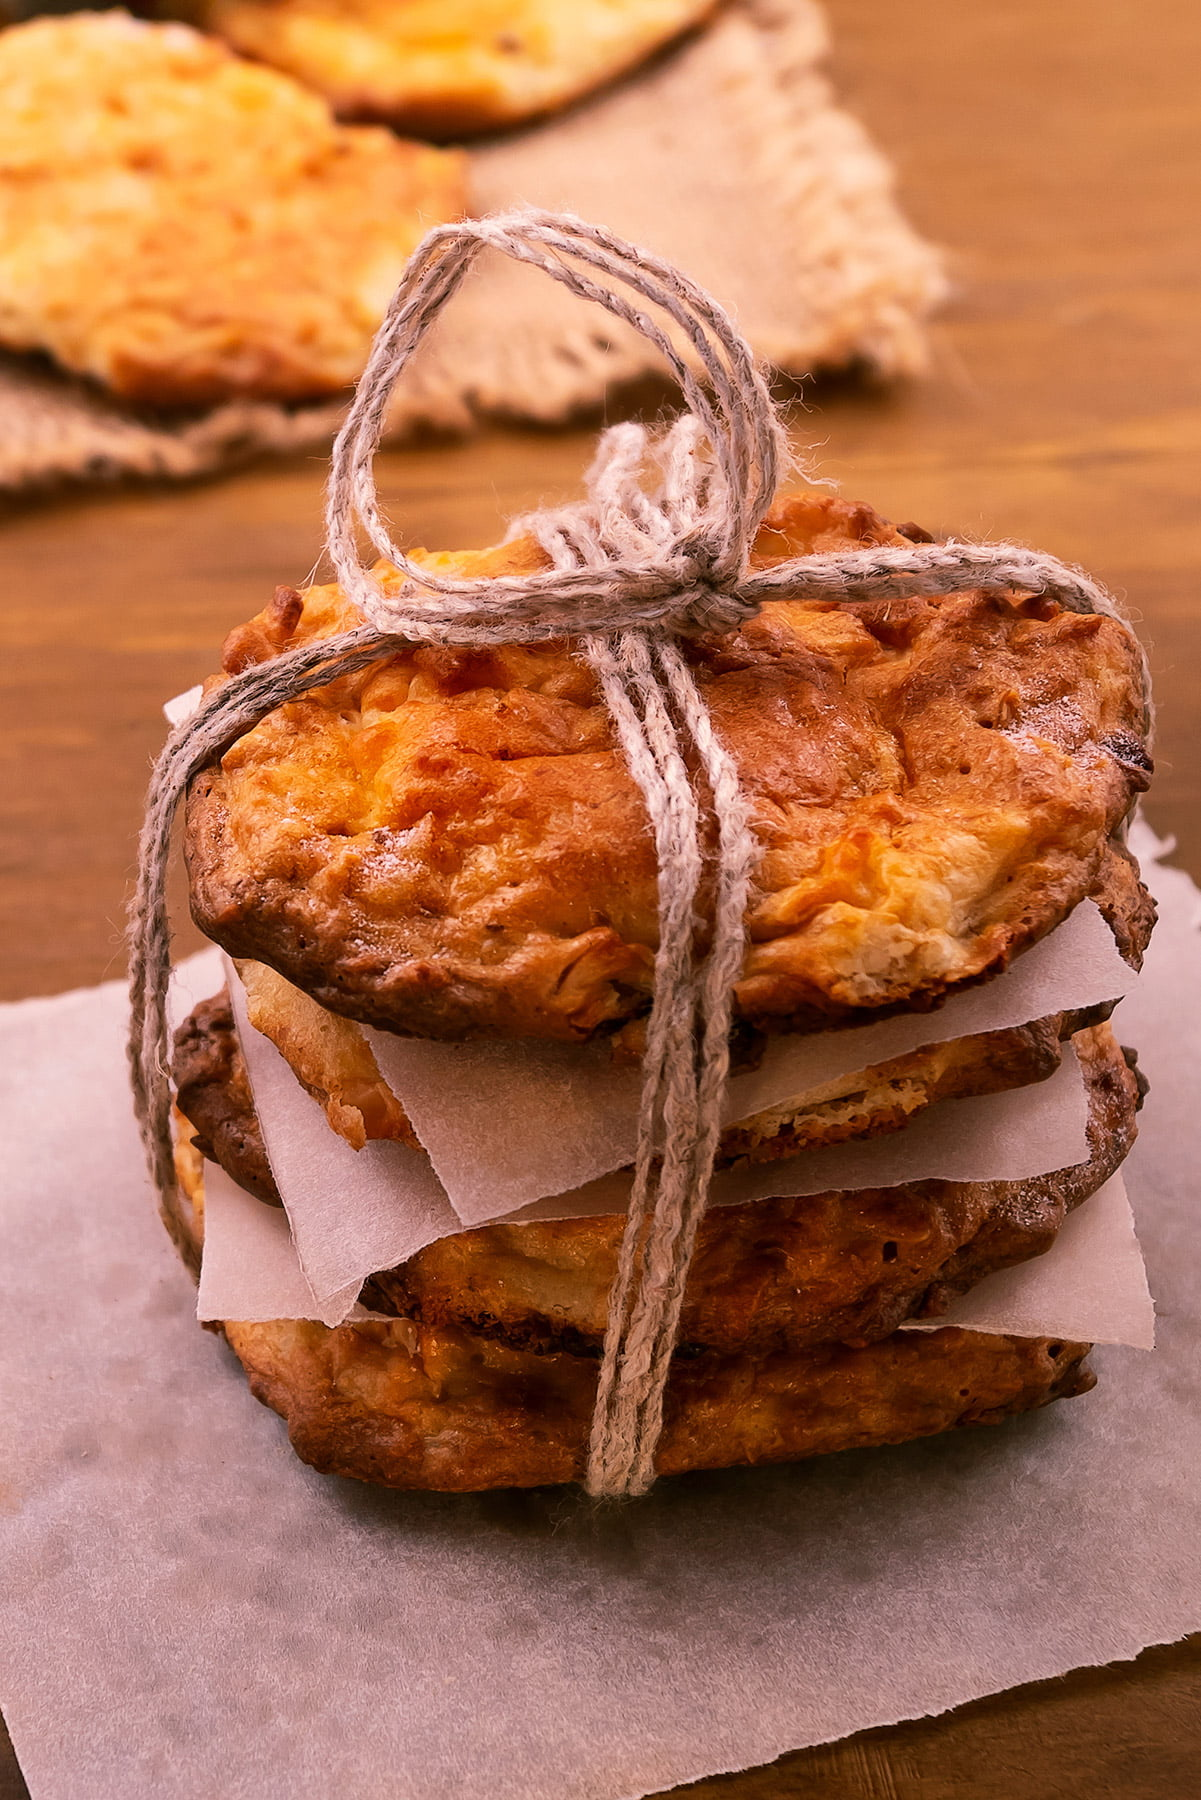 homemade biscuit stack and tied with string